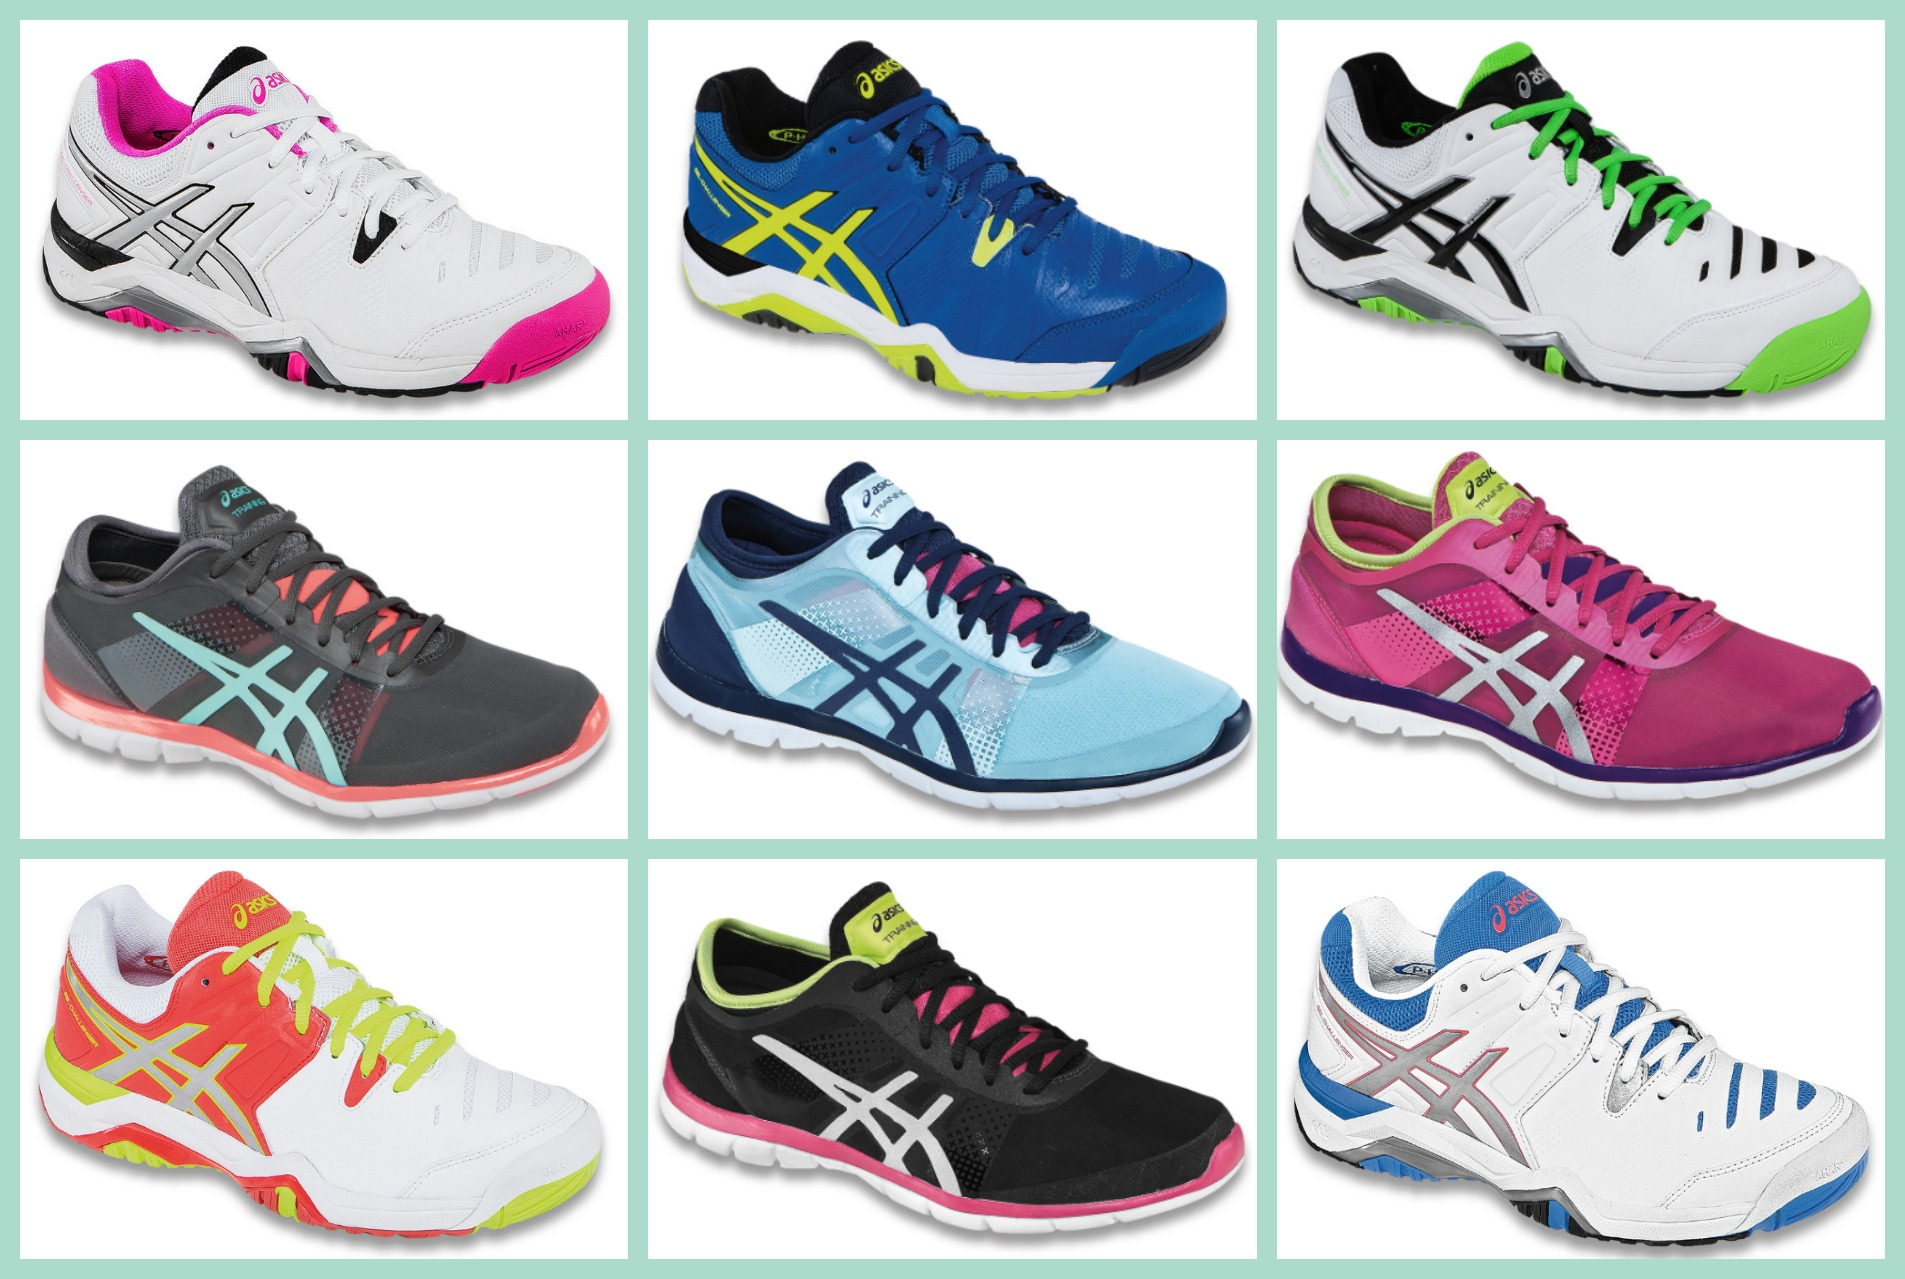 Asics Athletic et and Tennis Shoes pour hommes et femmes Shoes and aussi bas que 751baba - radicalfrugality.info